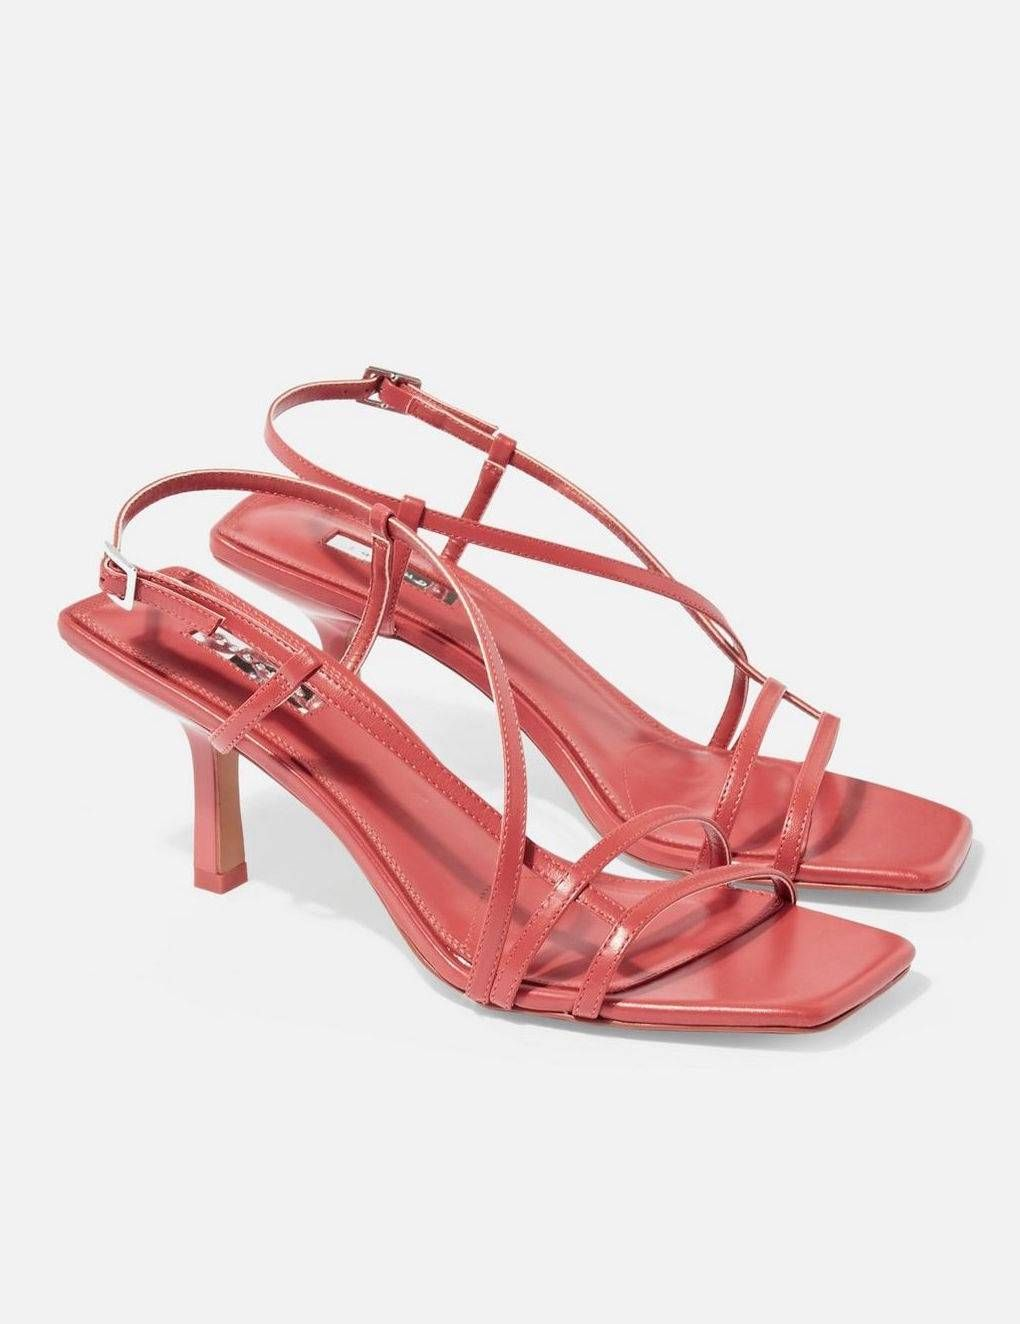 c565e0a8570 Floss Heels Are the Naked Shoe of 2019